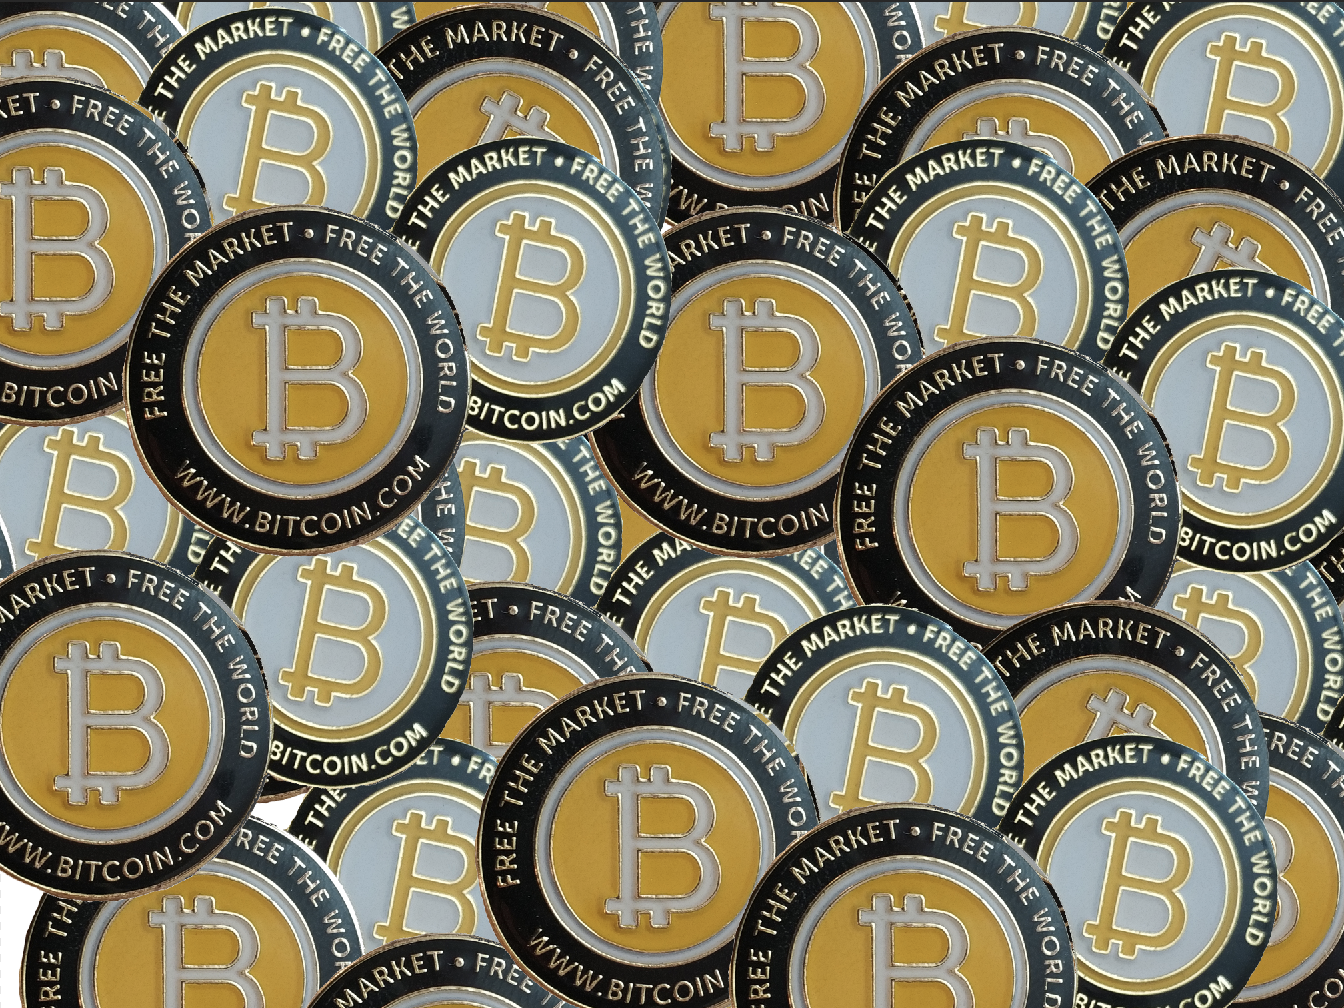 Box of 50 Pins - Buy Products with Cryptocurrency